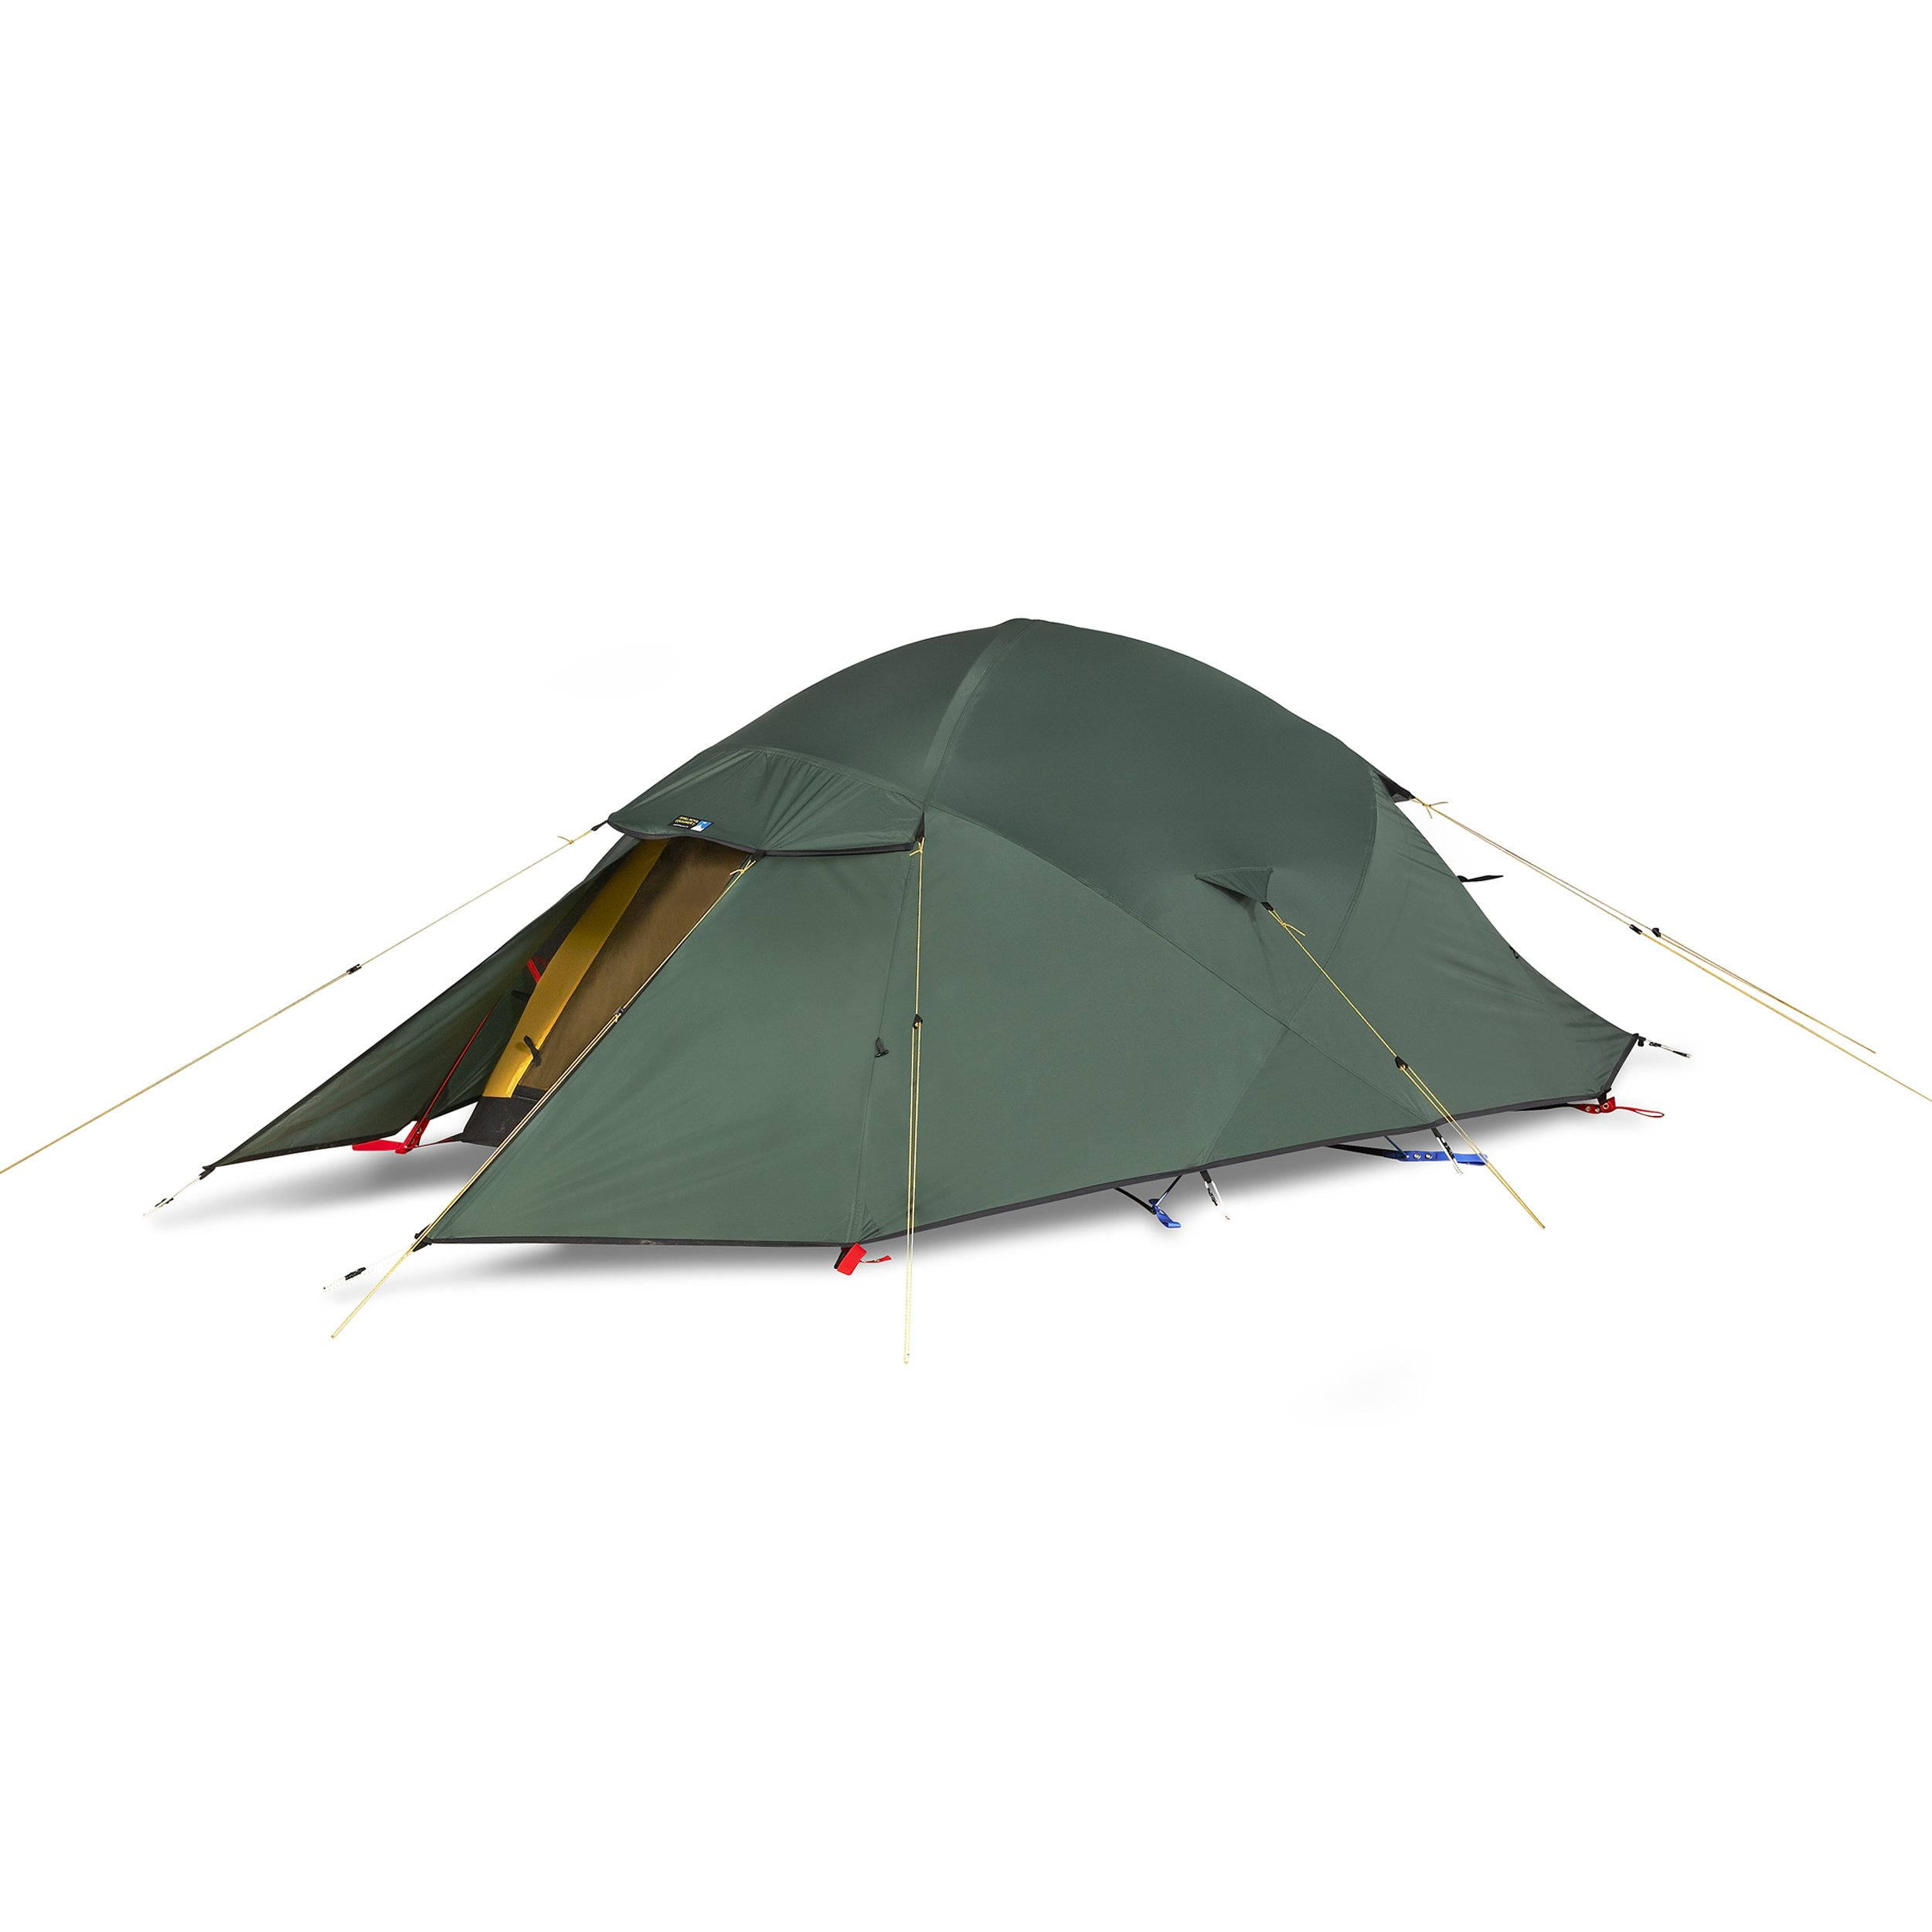 £800.00  sc 1 st  Terra Nova Equipment & Mountain Tents / Expedition Tents from Terra Nova Equipment ...